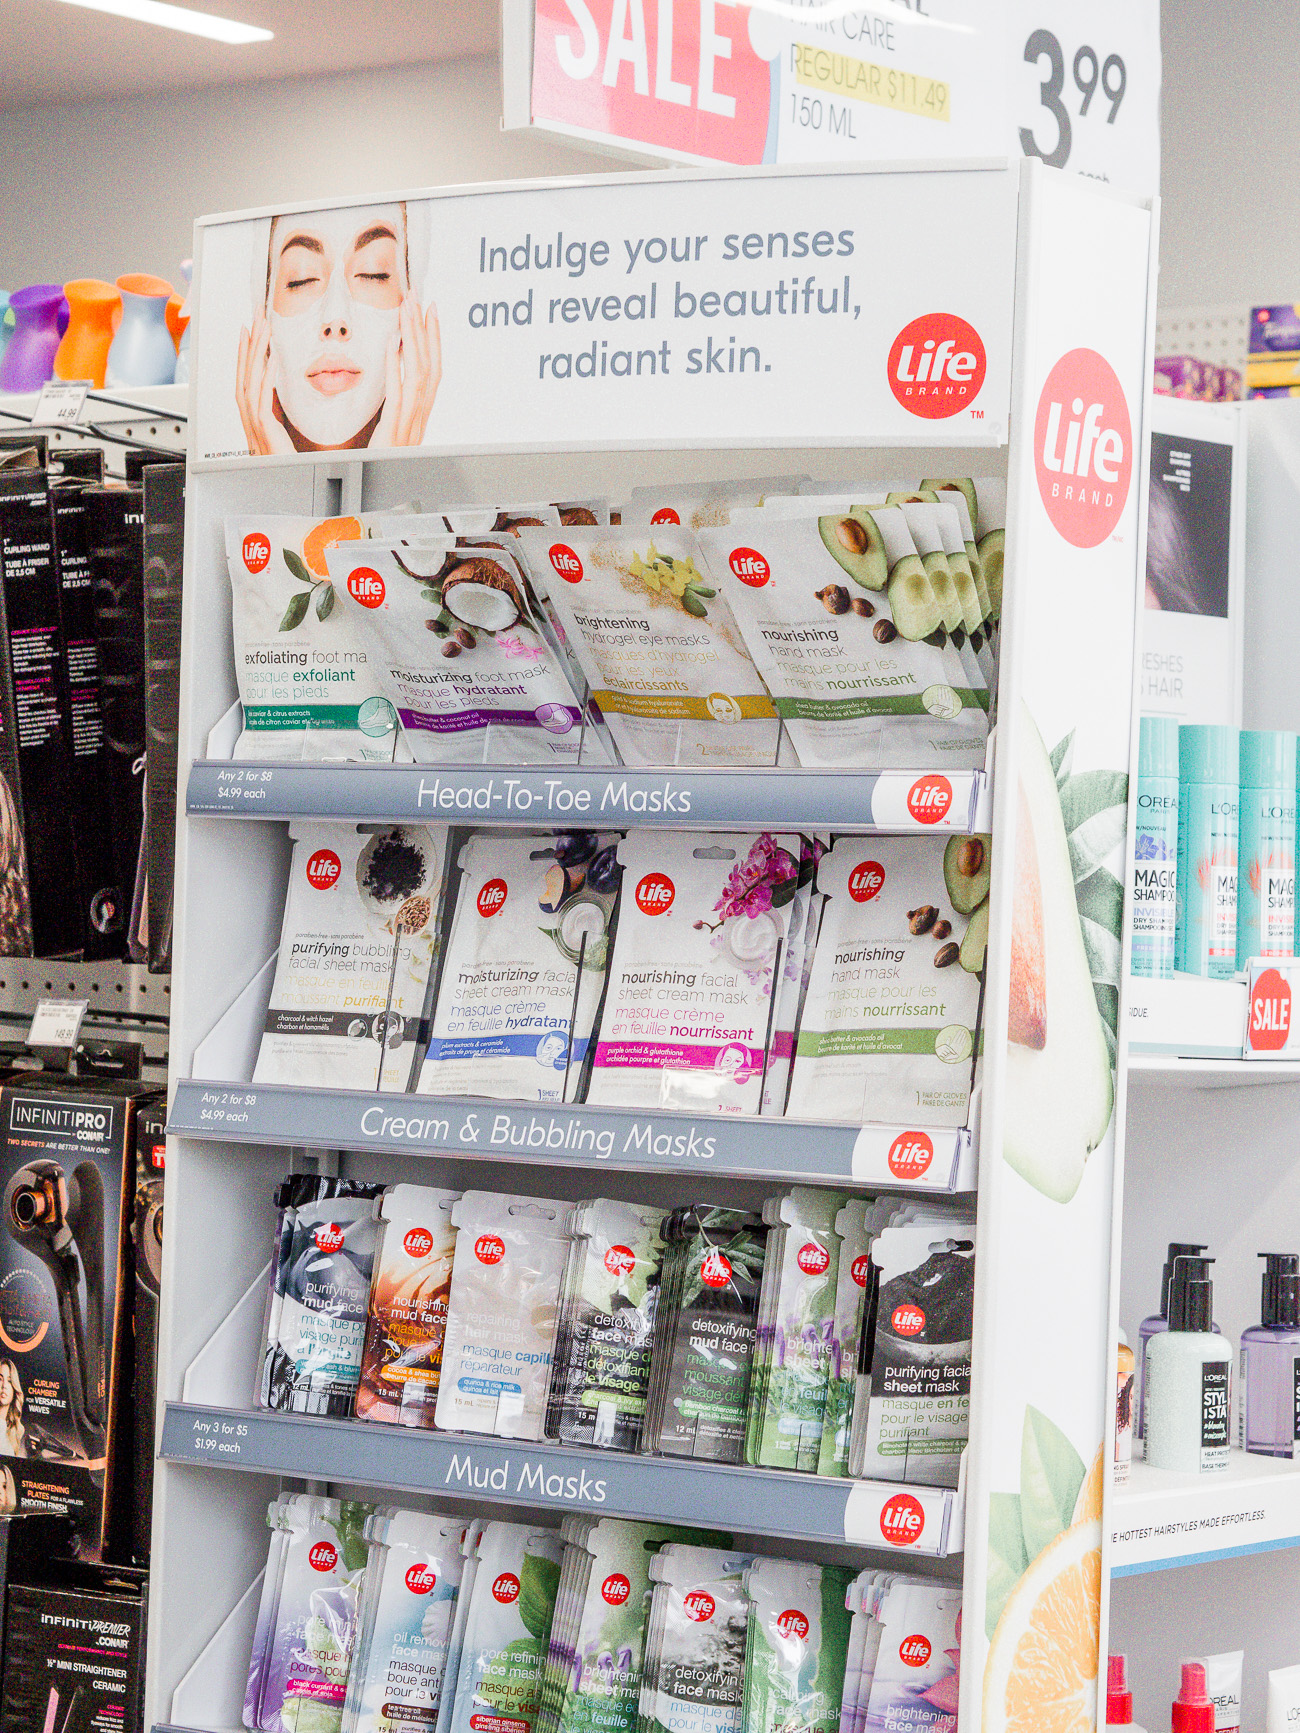 Life Brand face masks from Shoppers Drug Mart